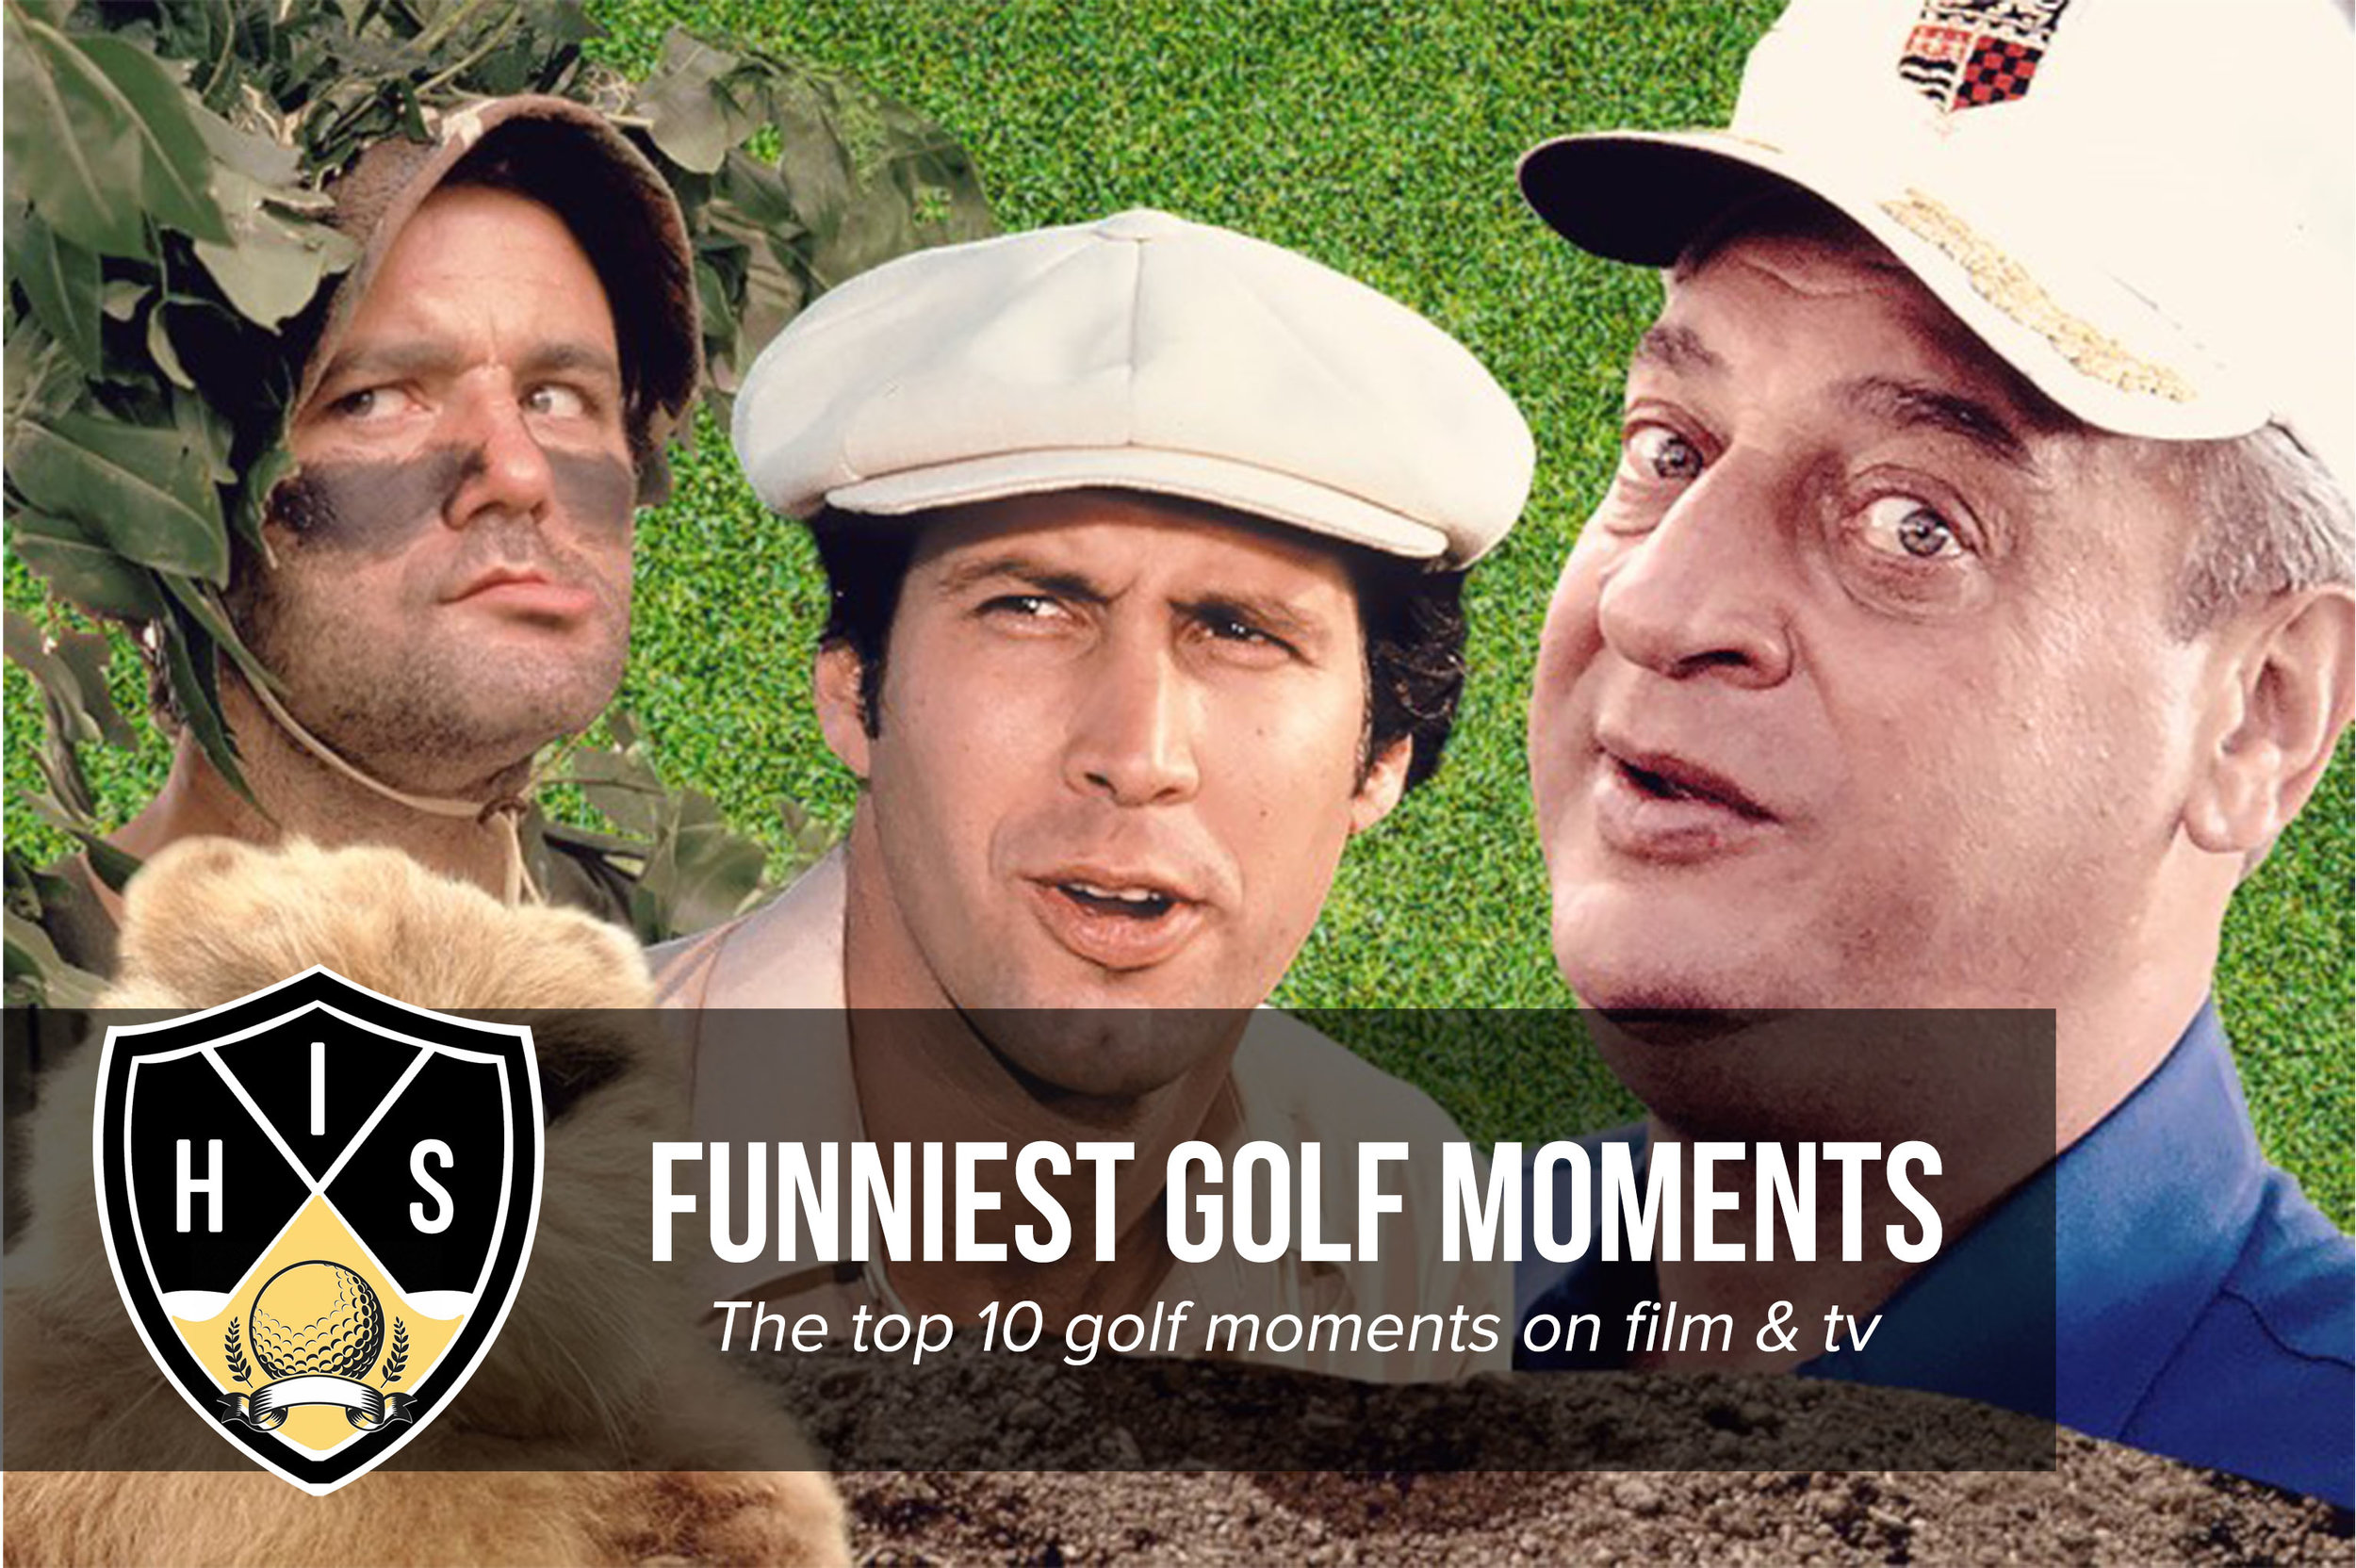 Funniest Golf Moments